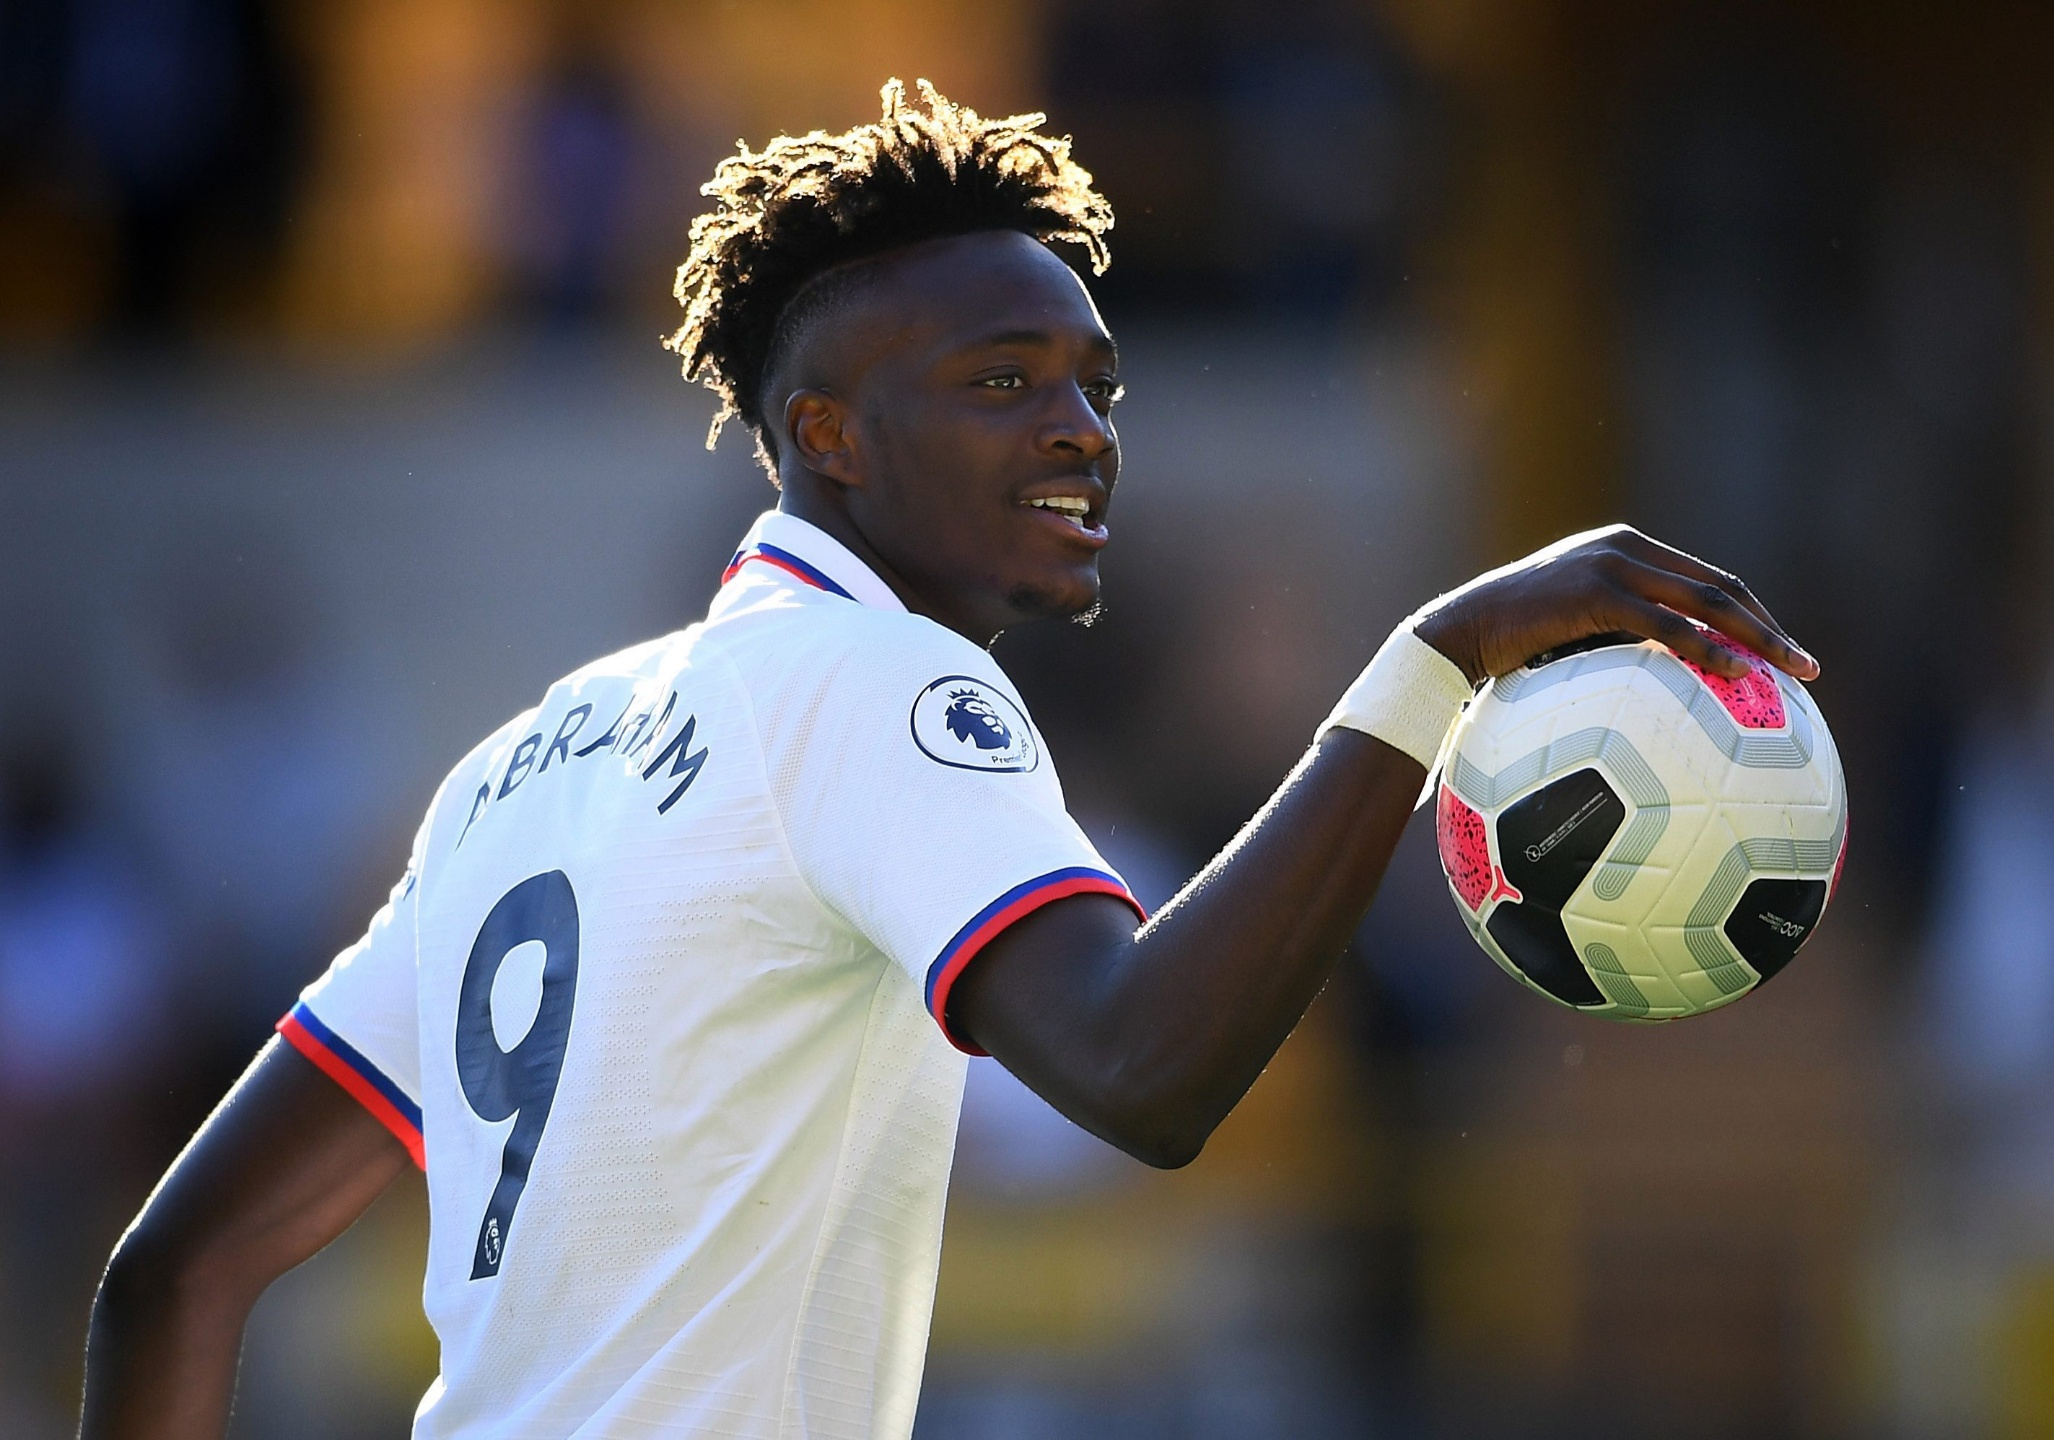 AC Milan snubbed Tammy Abraham this summer because they thought he wasn't good enough